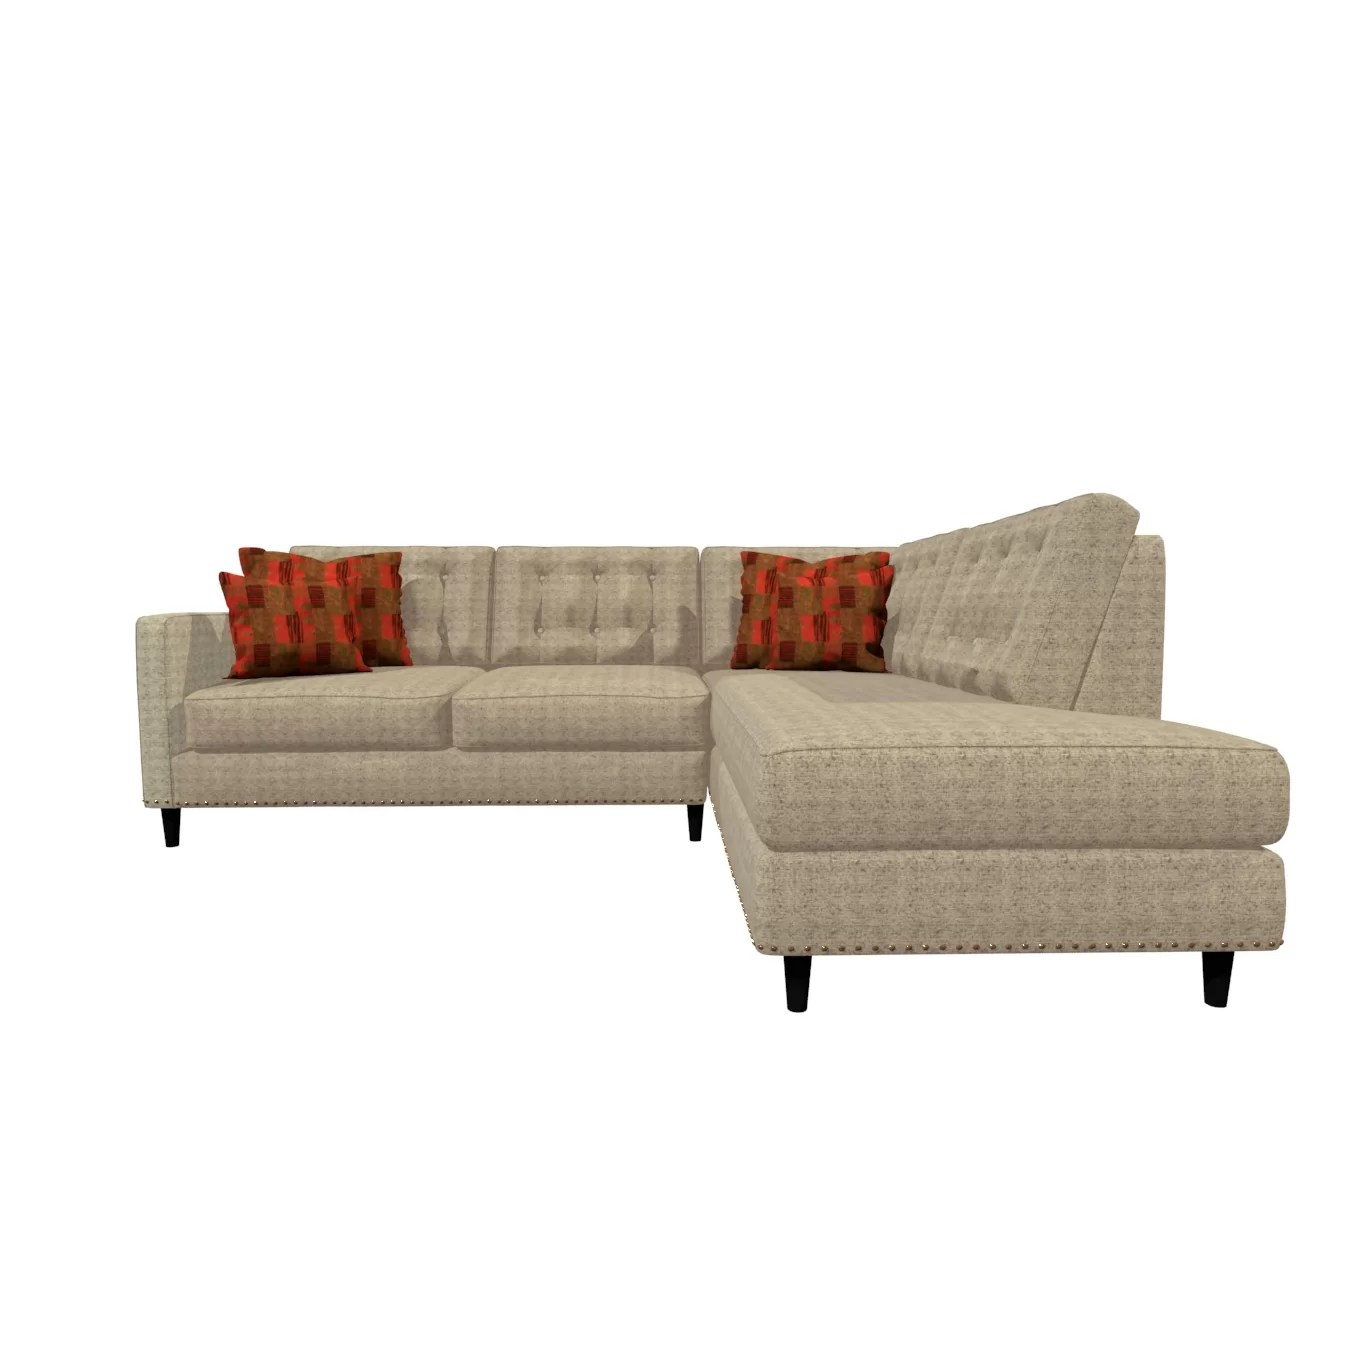 orlando sectional sofa cheap sofas in houston tx gardenasofa wayfair